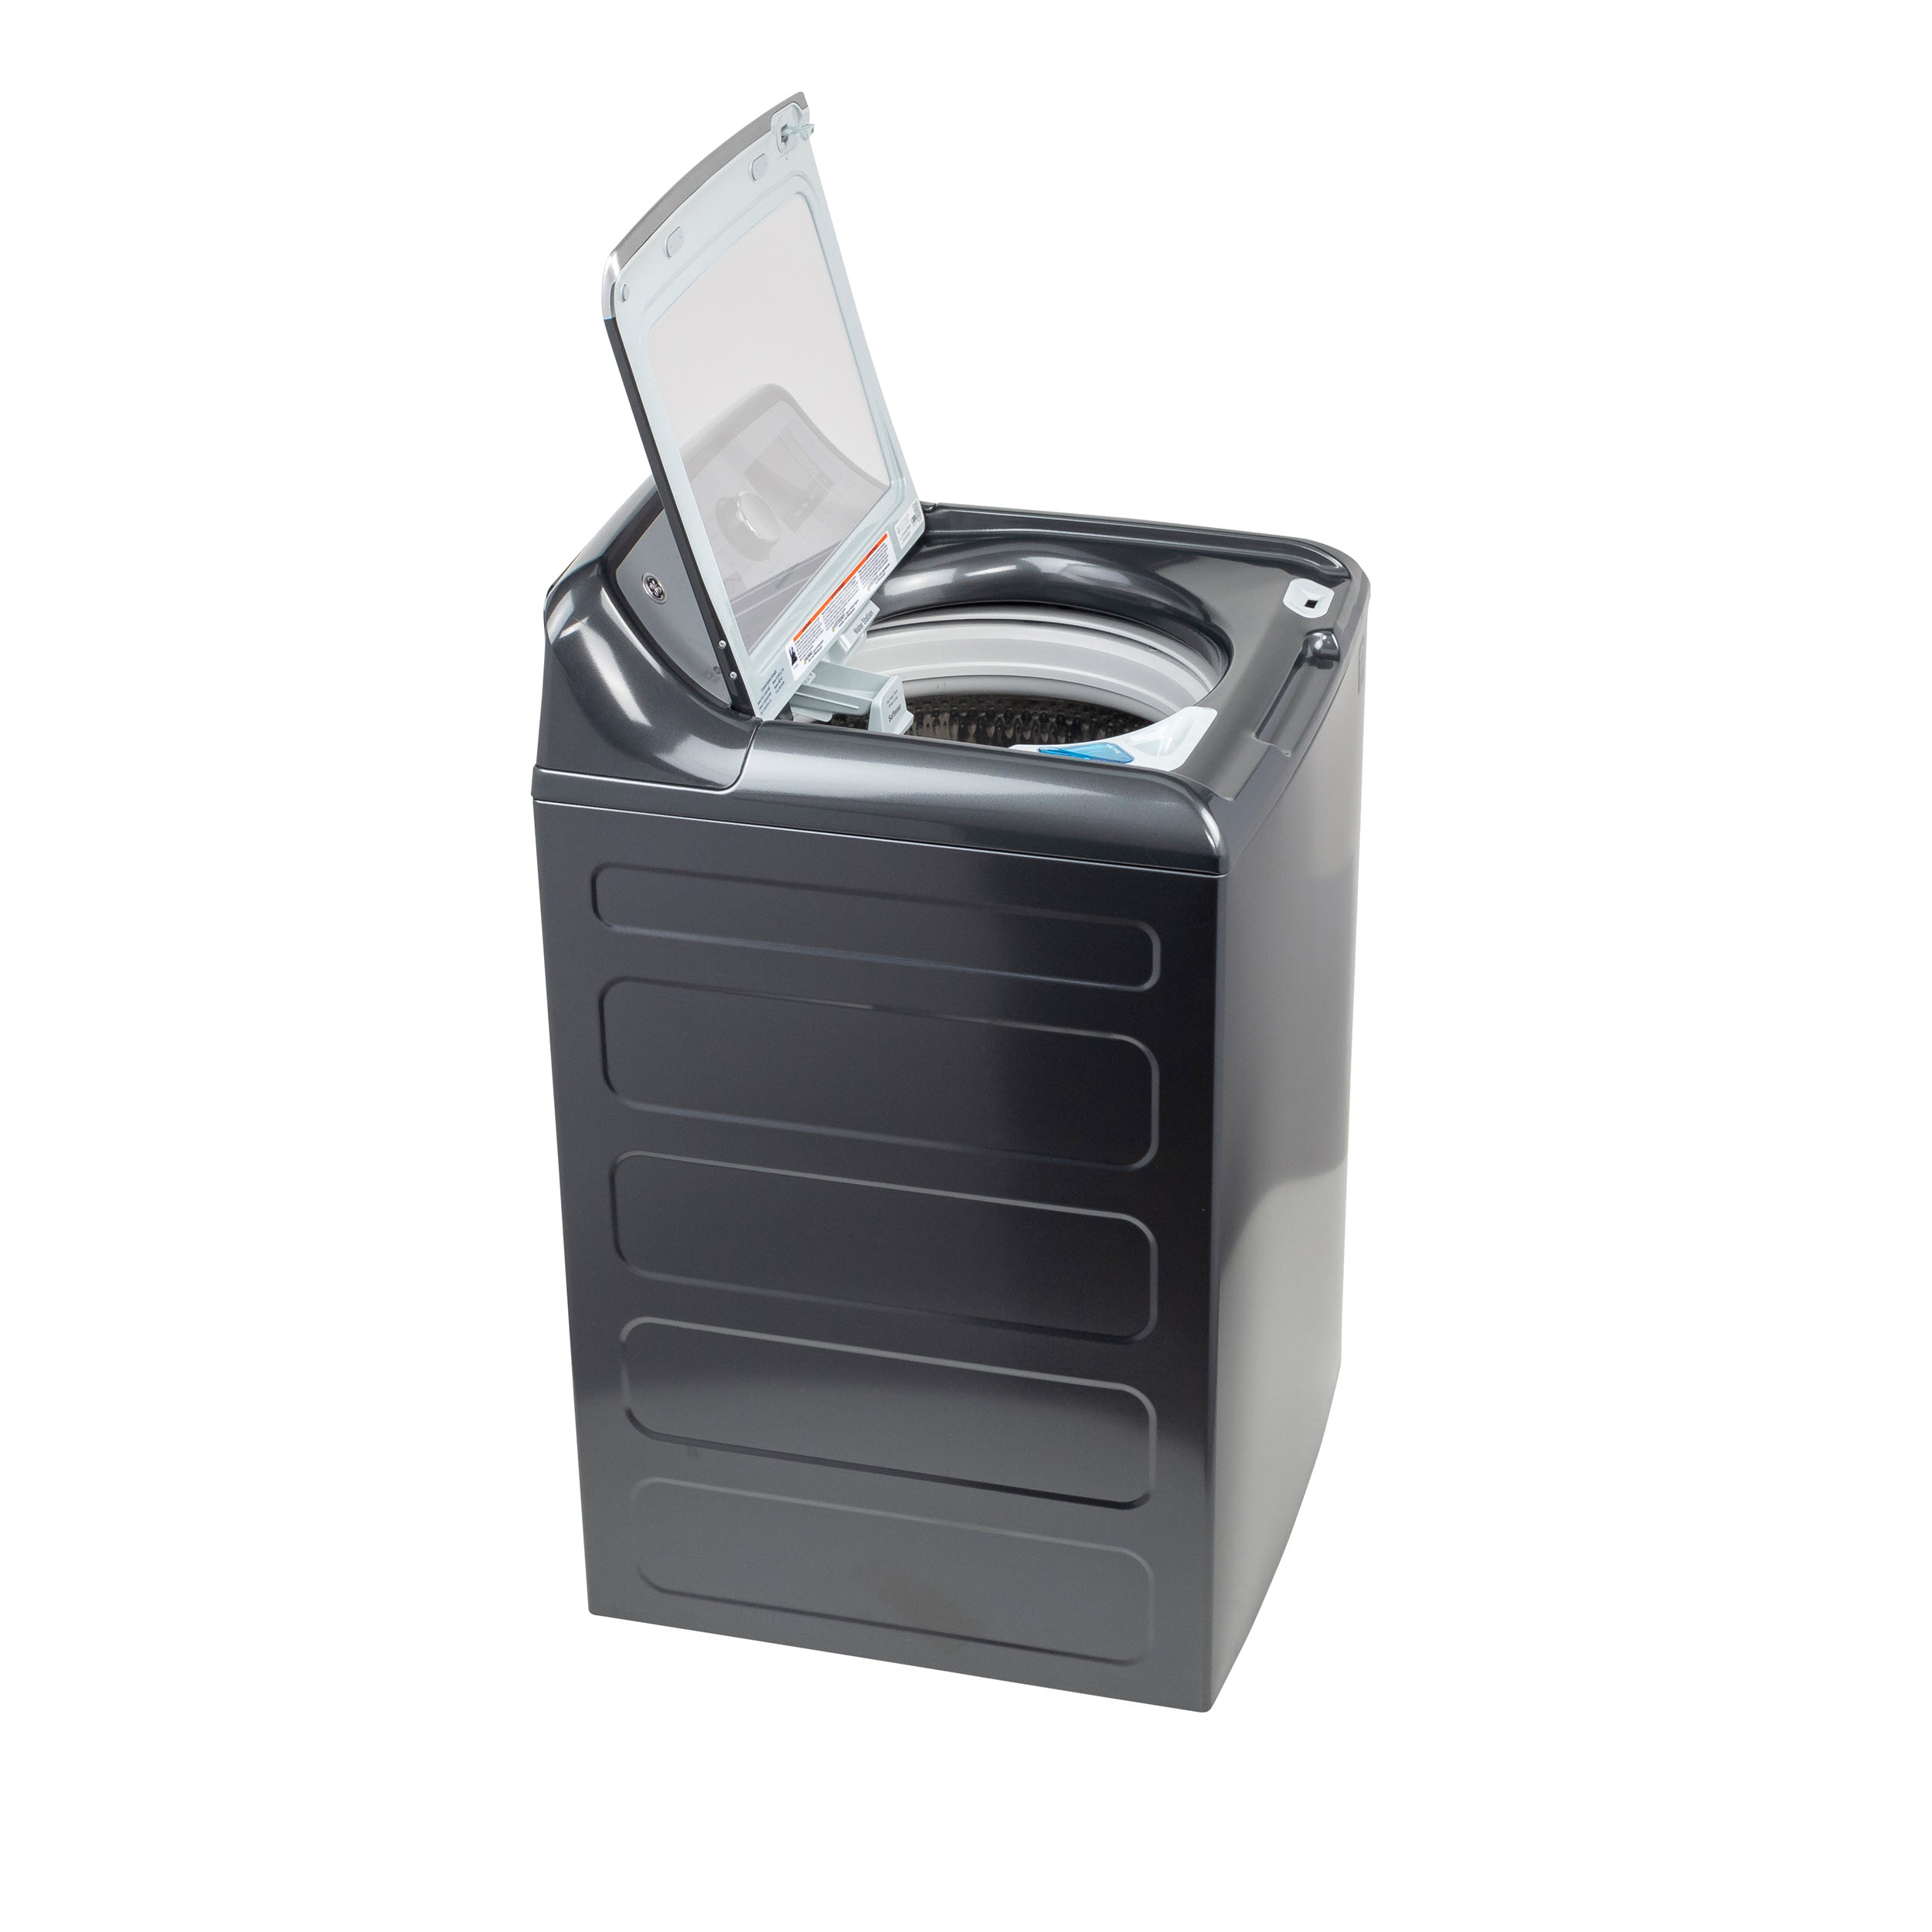 Model: GTW840CPNDG | GE GE® 5.2  cu. ft. Capacity Smart Washer with Sanitize w/Oxi and SmartDispense